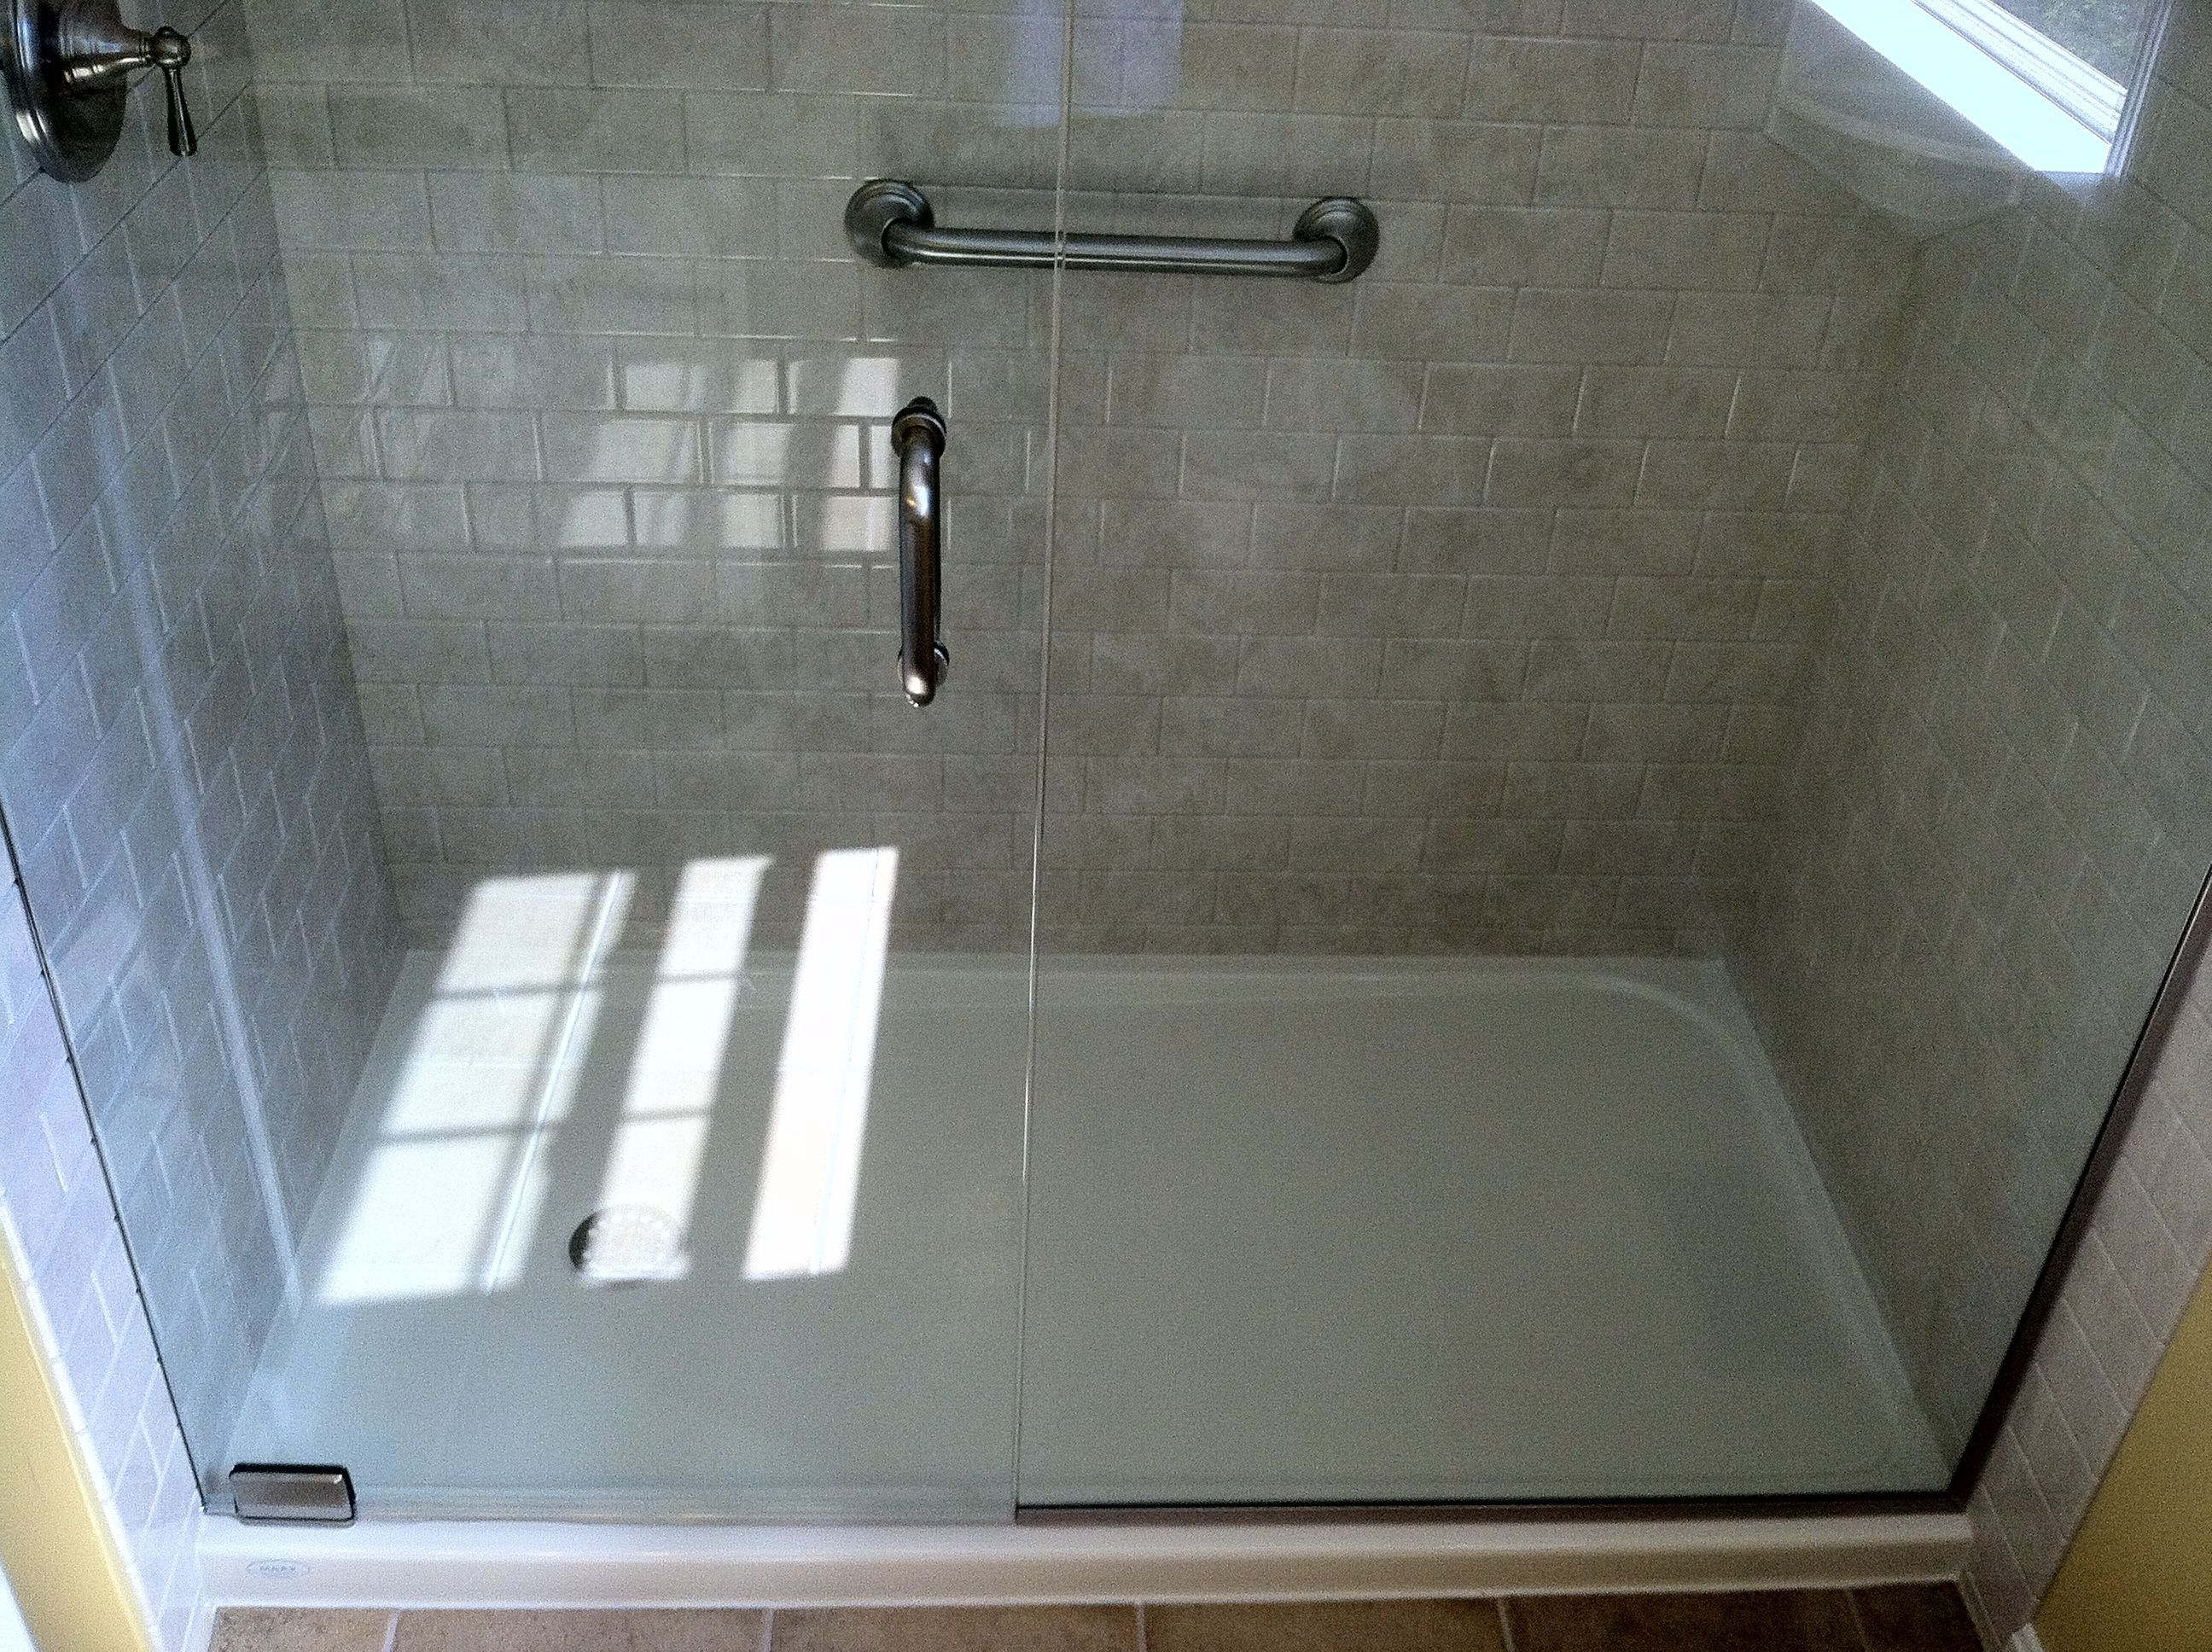 Best 25+ Fiberglass shower pan ideas on Pinterest | Fiberglass ...